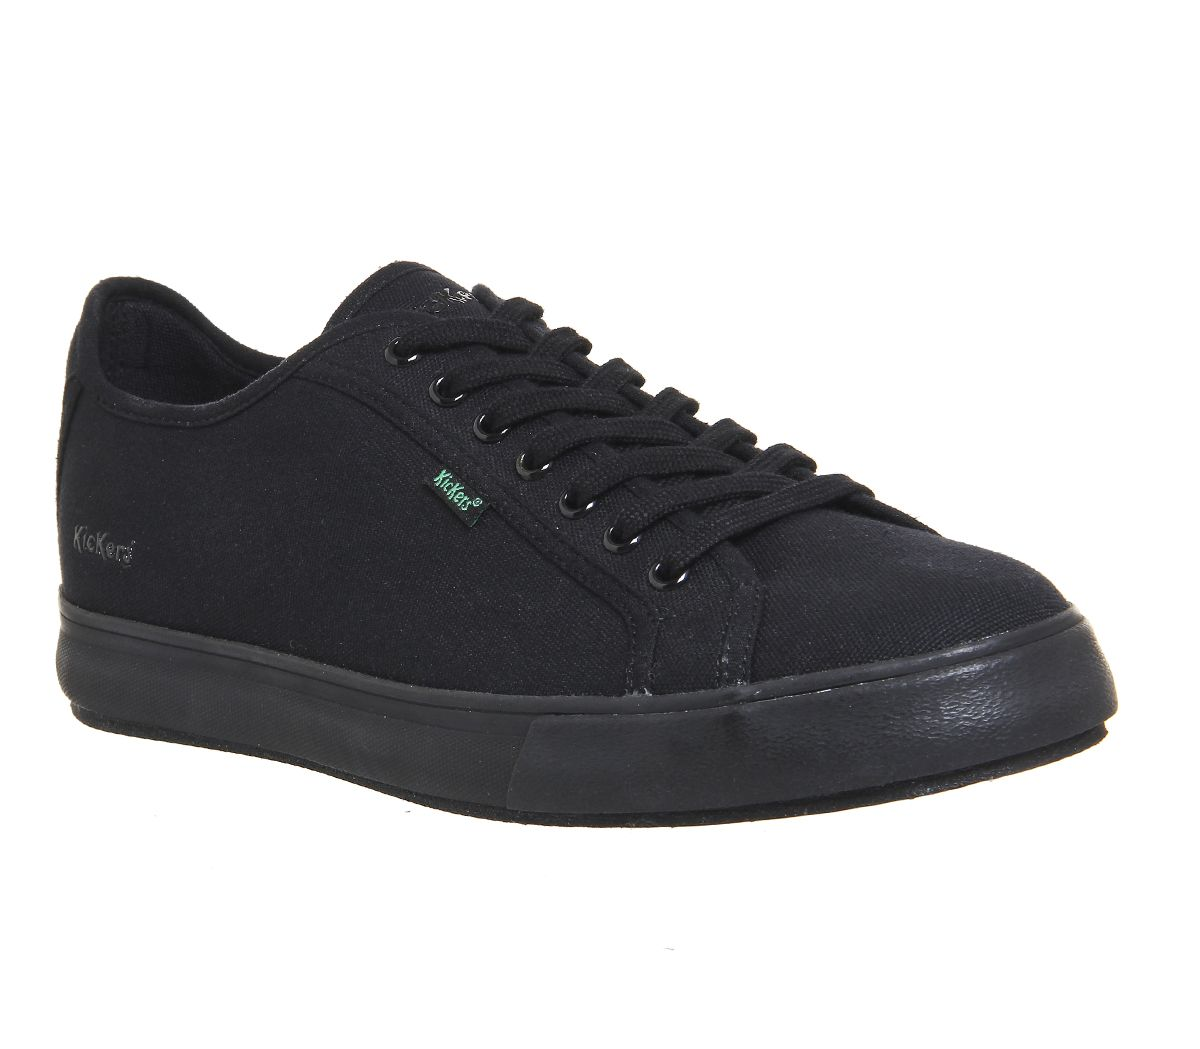 a78992e1d18f Kickers Tovni Lacer Sneakers Black Canvas - Casual